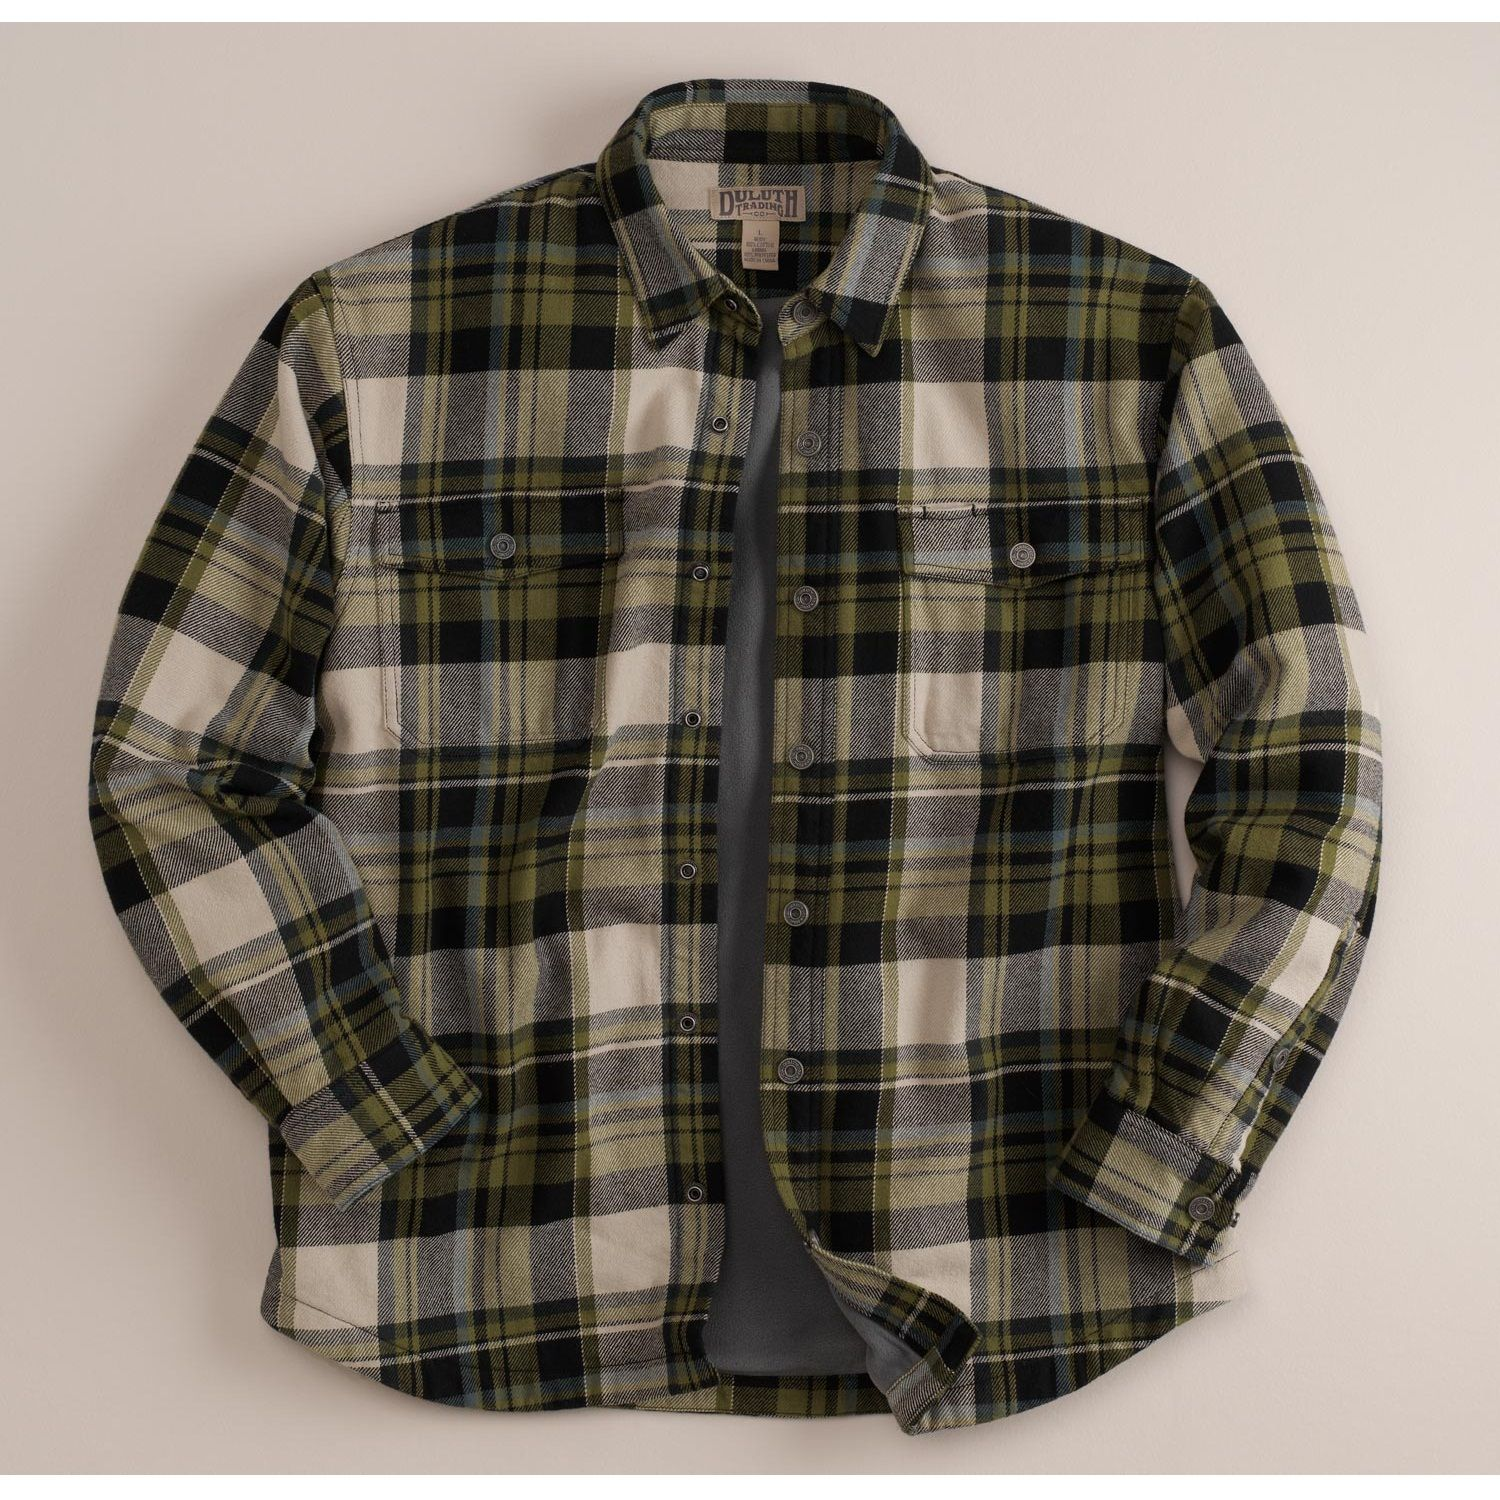 Green Black Plaid - Duluth Trading Co Men's Flapjack Fleece Lined ...